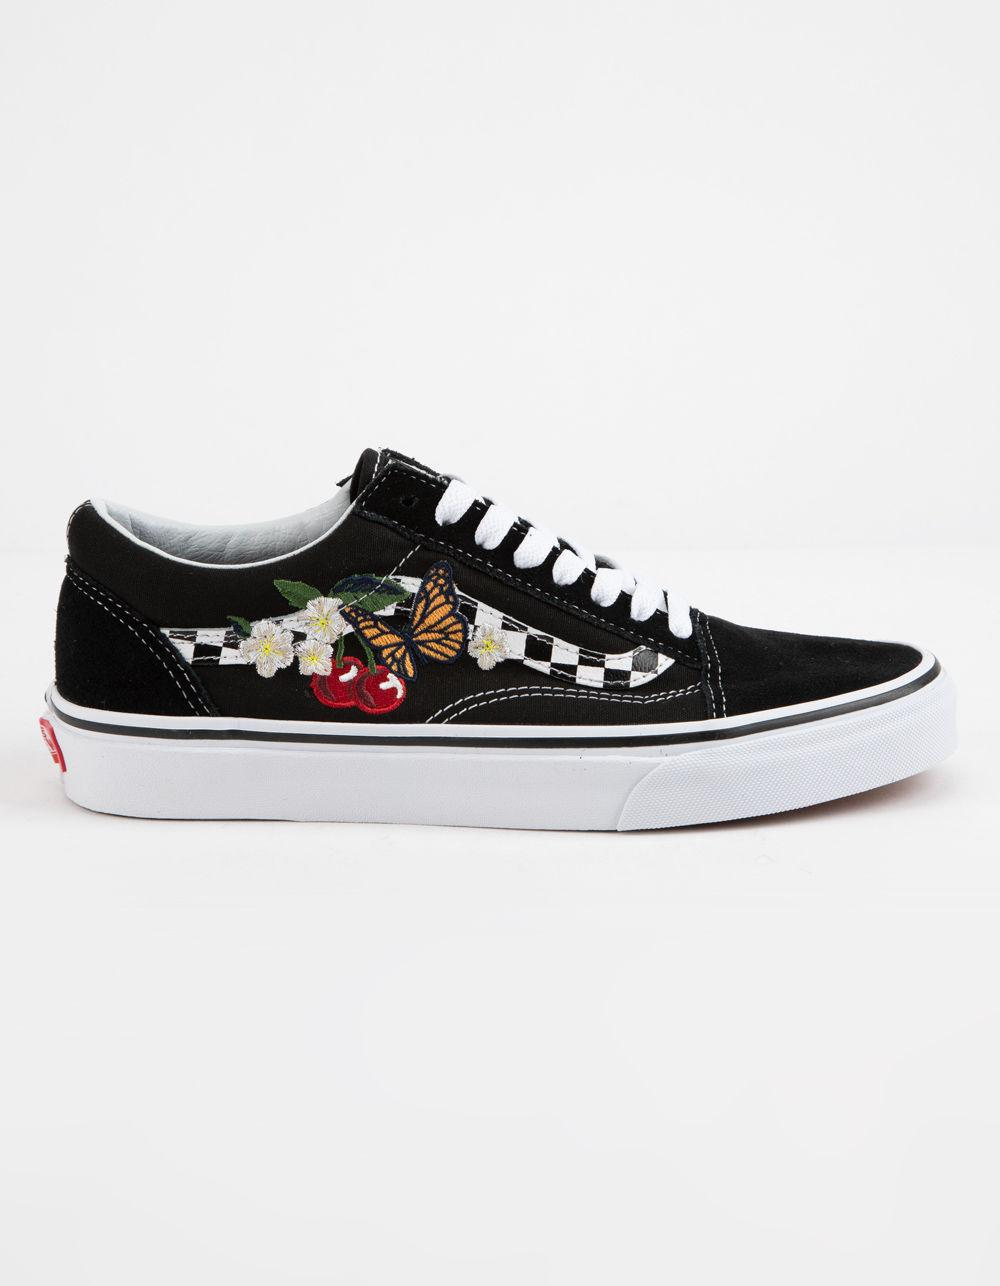 460f3e169094ed Lyst - Vans Checker Floral Old Skool Womens Shoes in Black